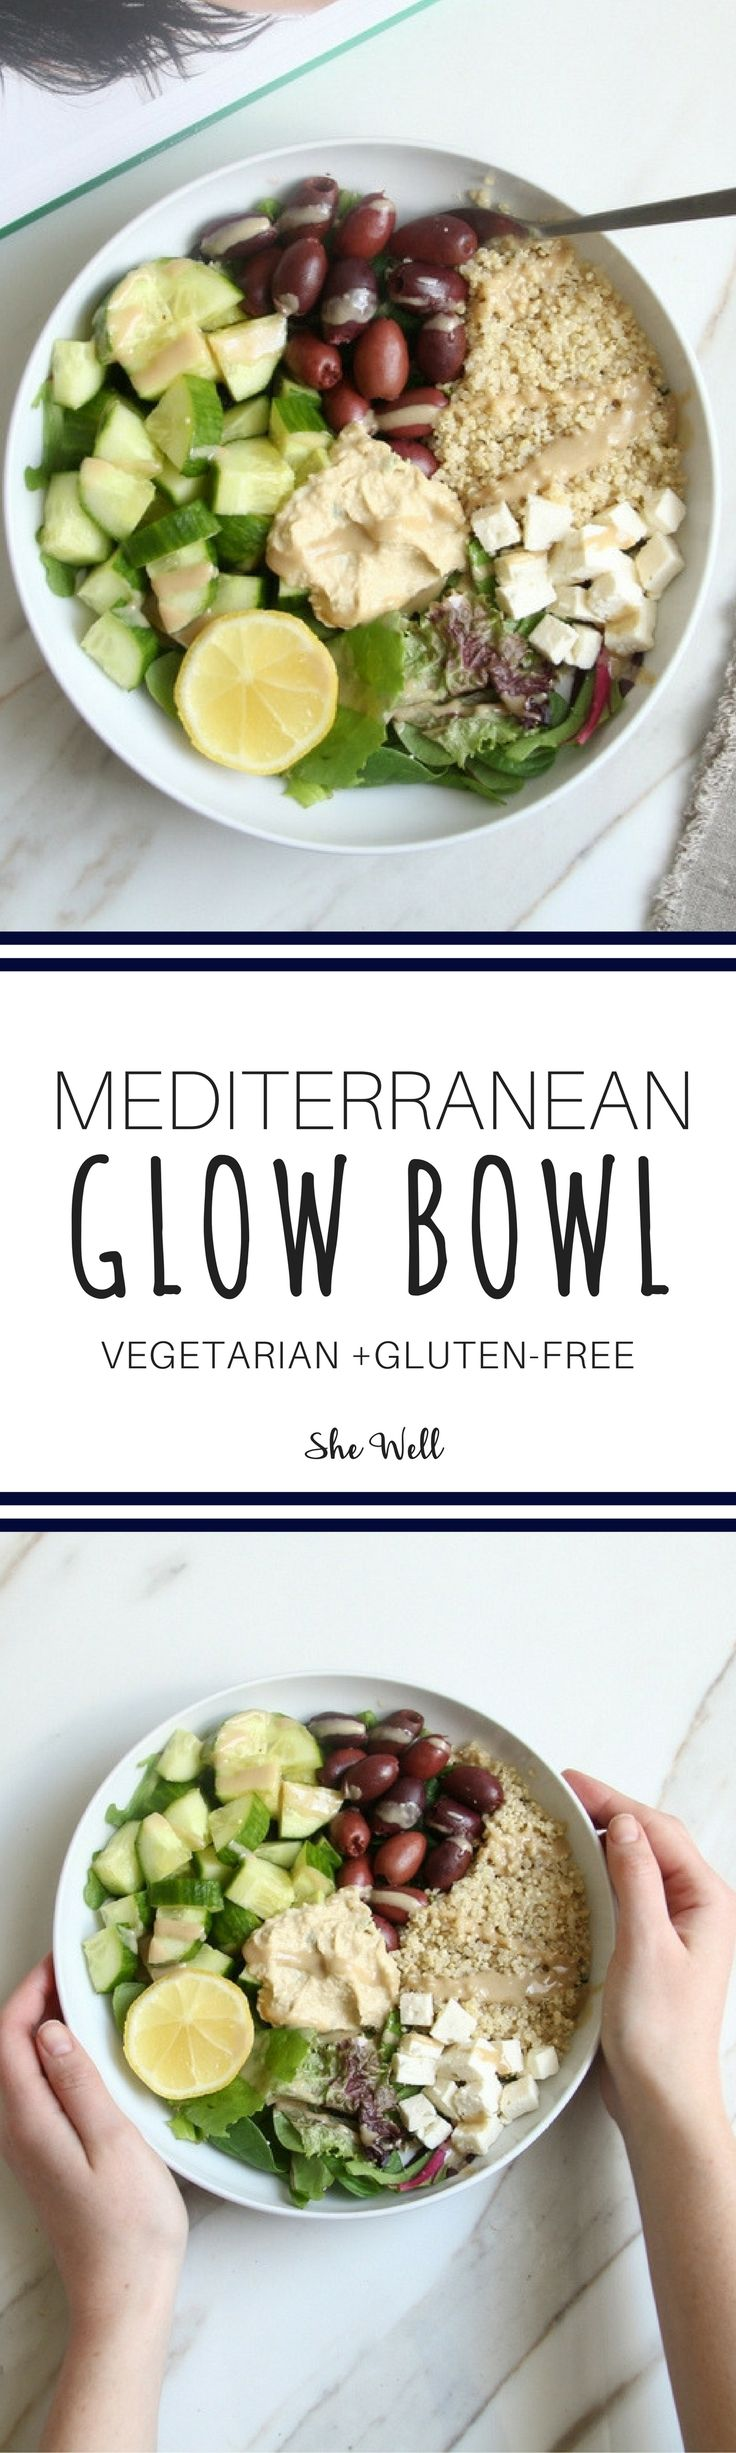 This is the perfect lunch or dinner recipe and packs perfectly for work or school! Great for people who are vegan, vegetarian & gluten-free. Click to read now or pin for later!